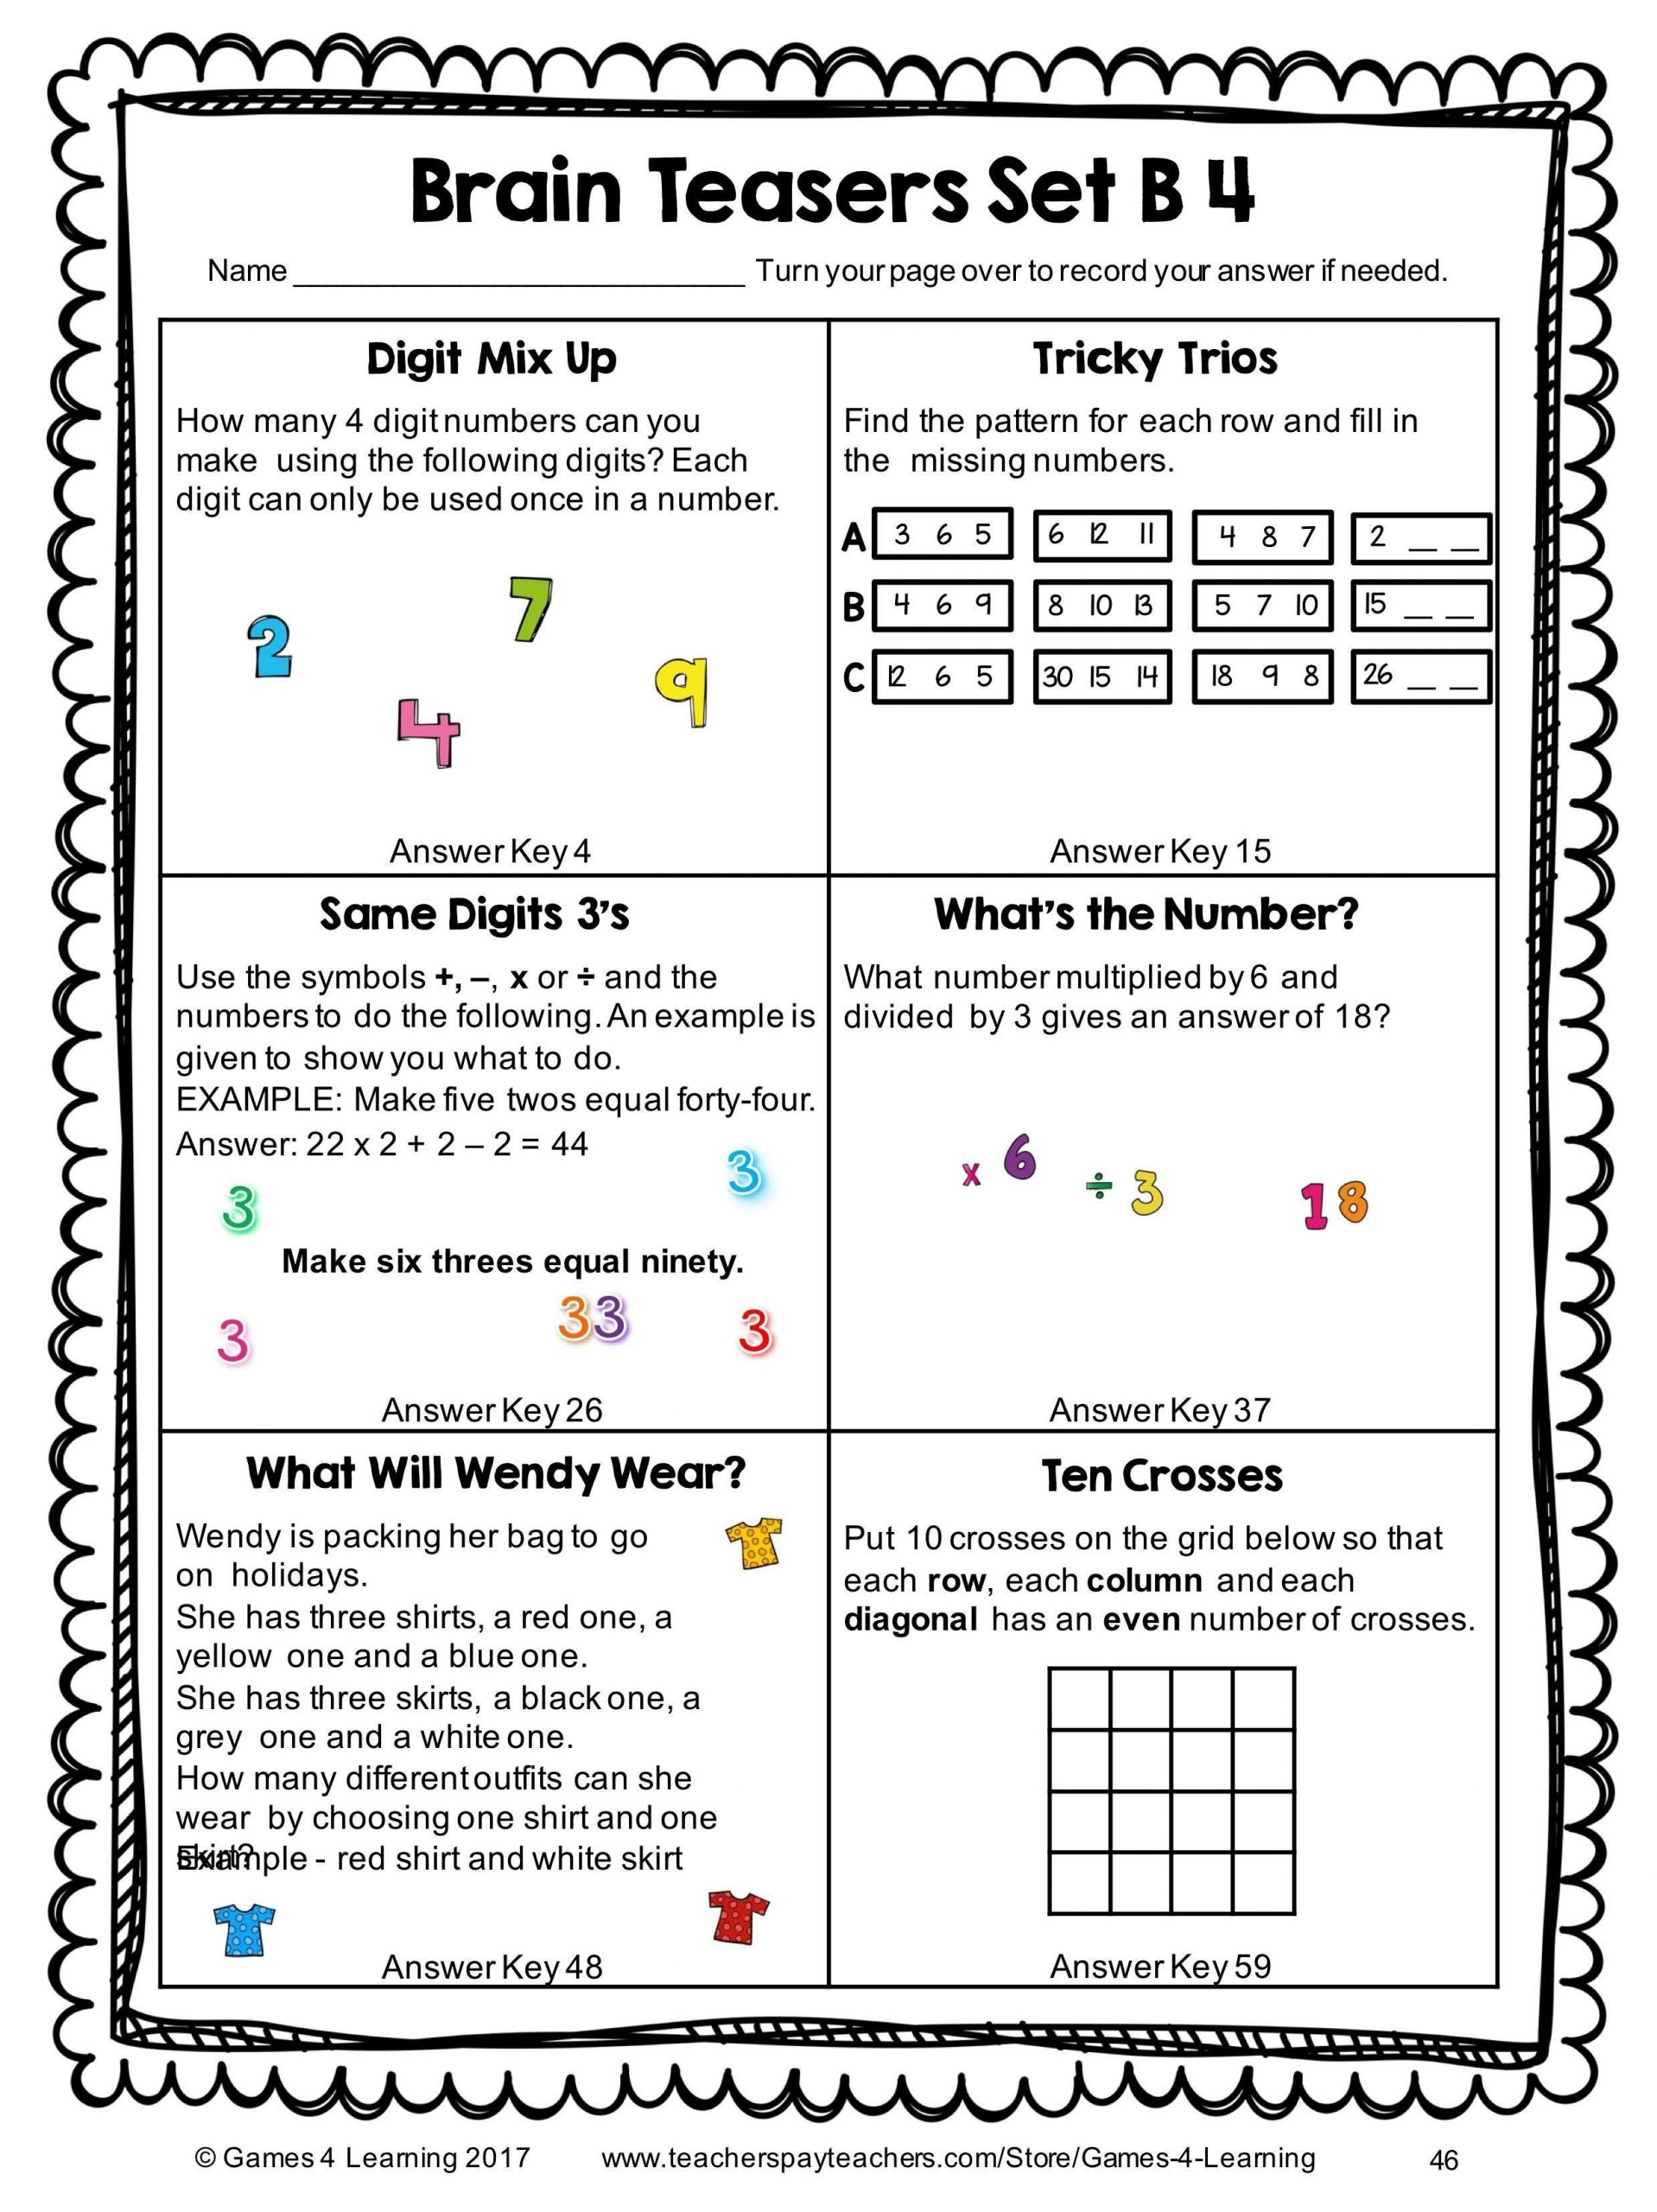 3rd Grade Brain Teasers Printable Brain Teaser Worksheets for Kids